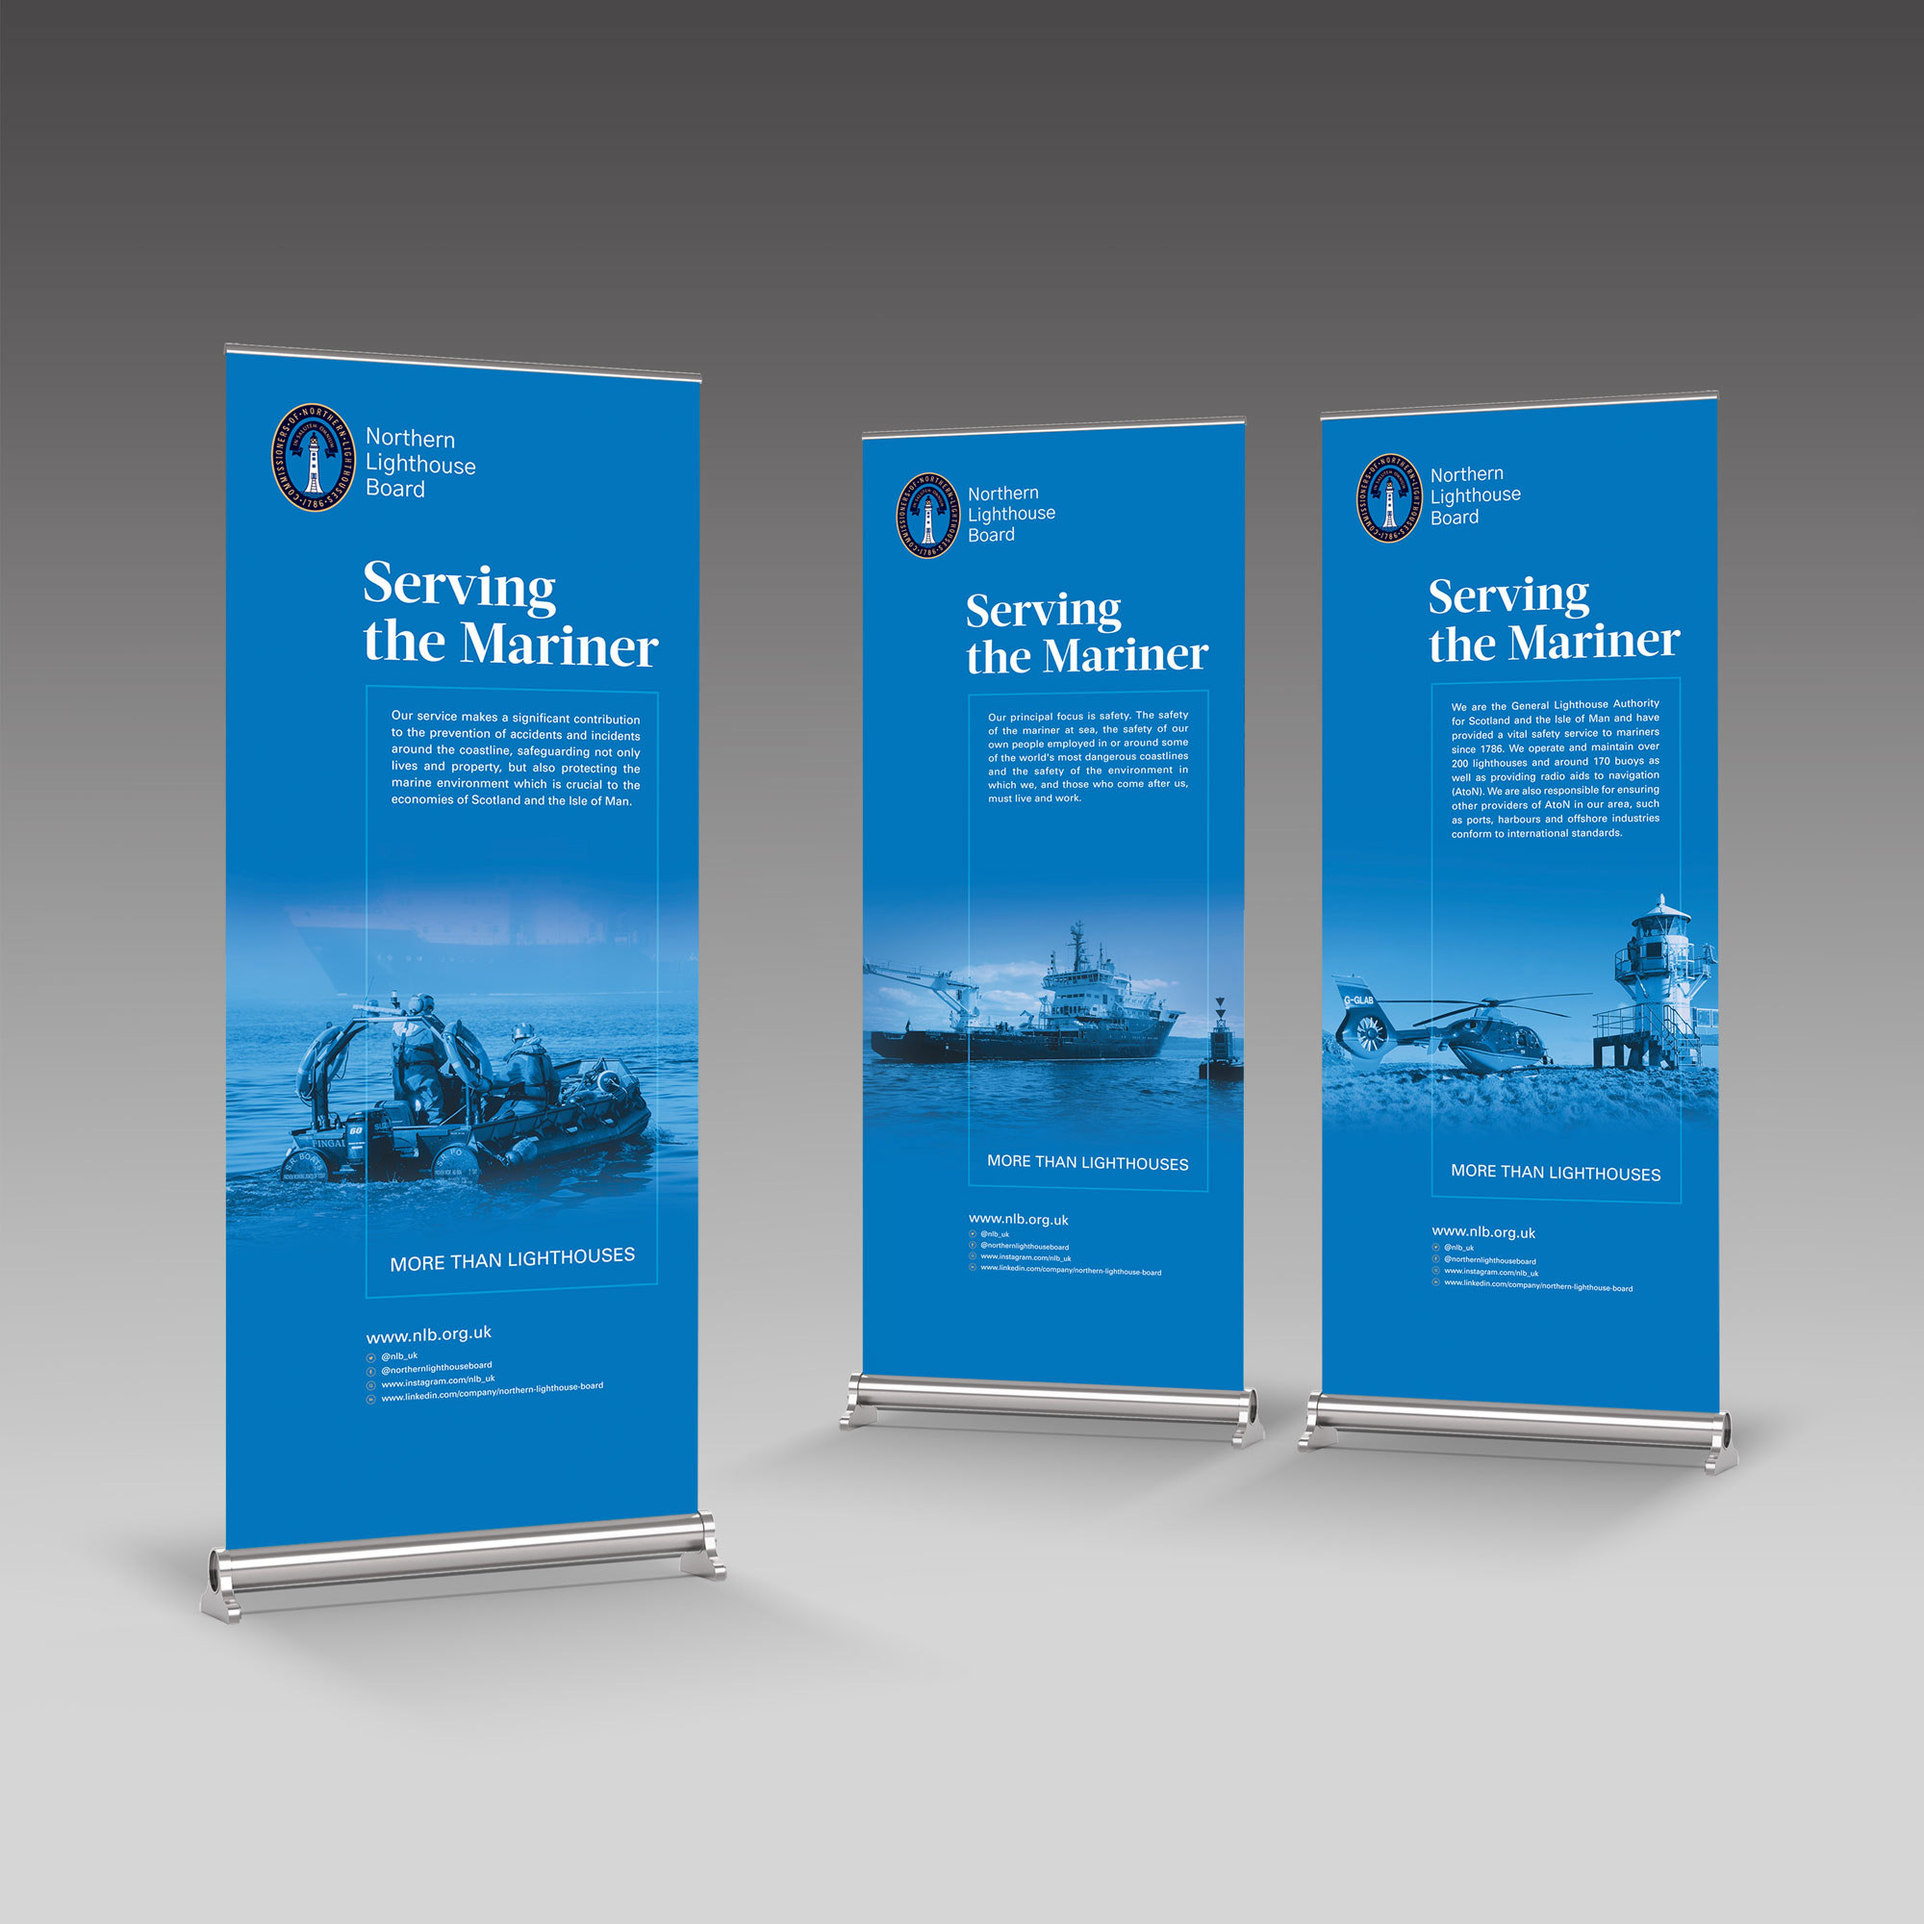 Northern Lighthouse Board – design for print